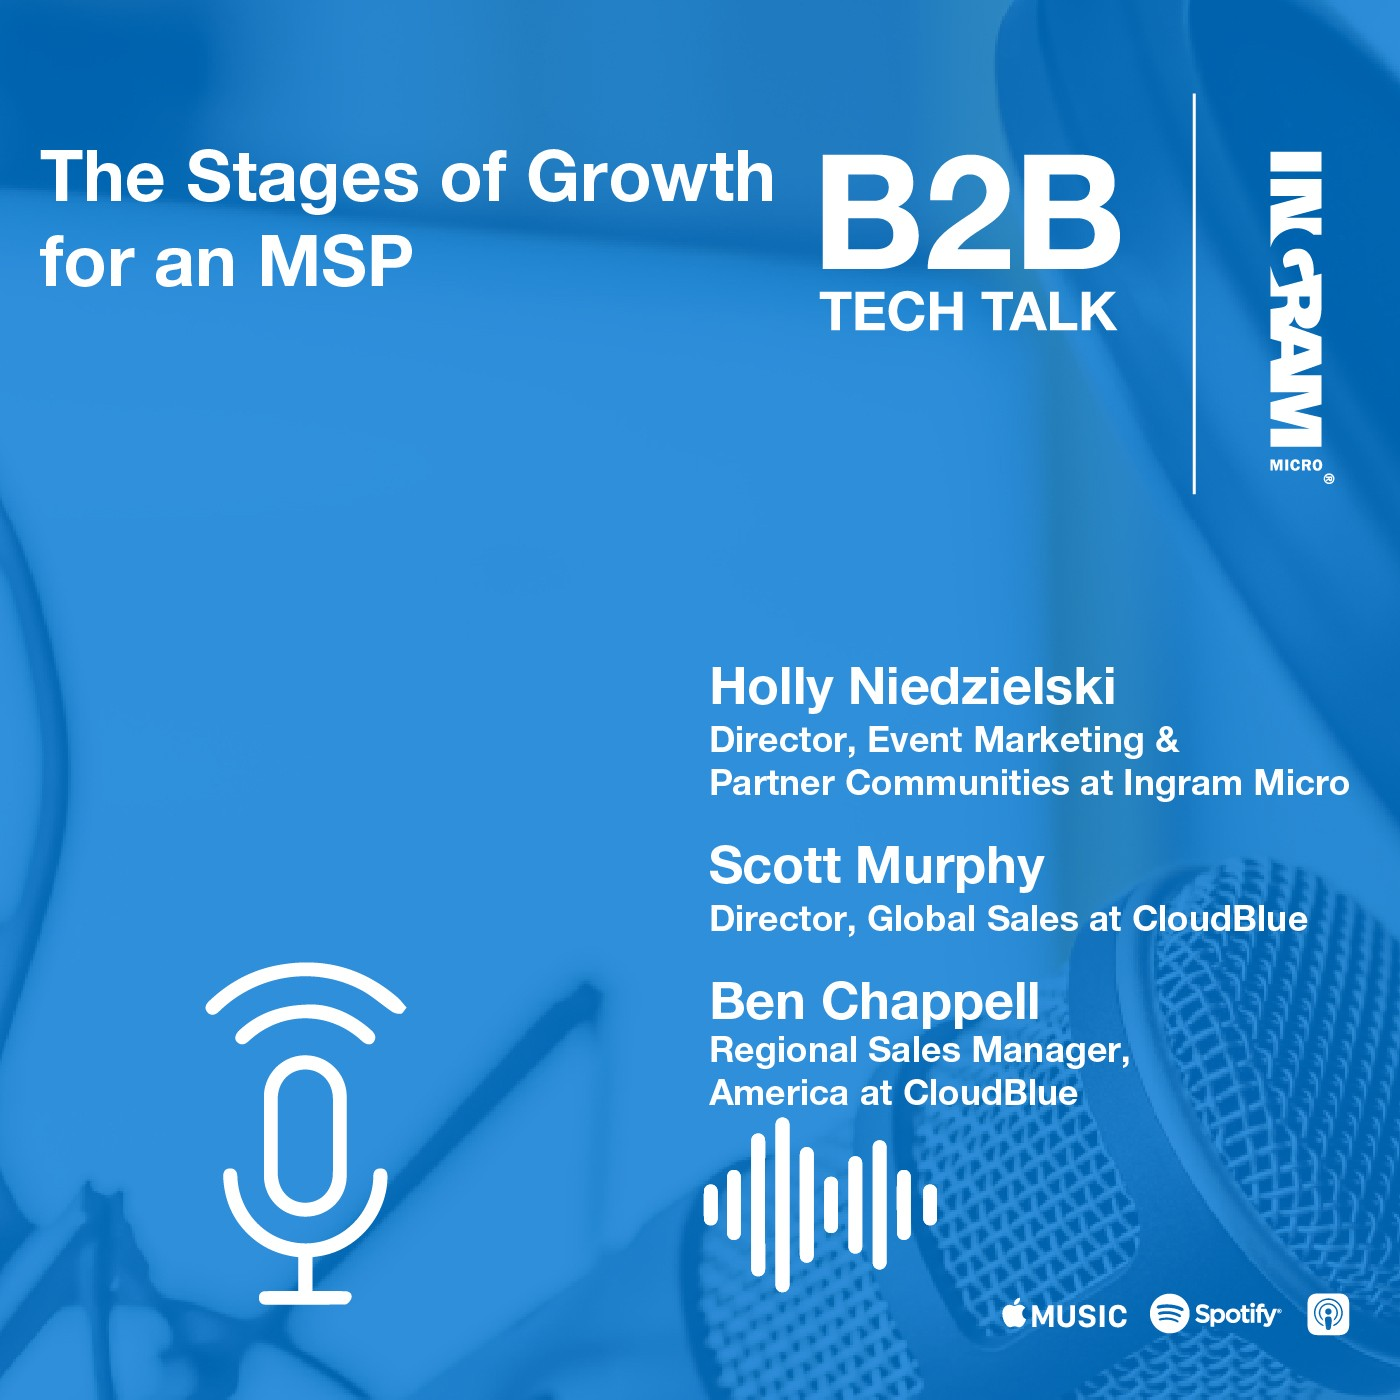 The Stages of Growth for an MSP